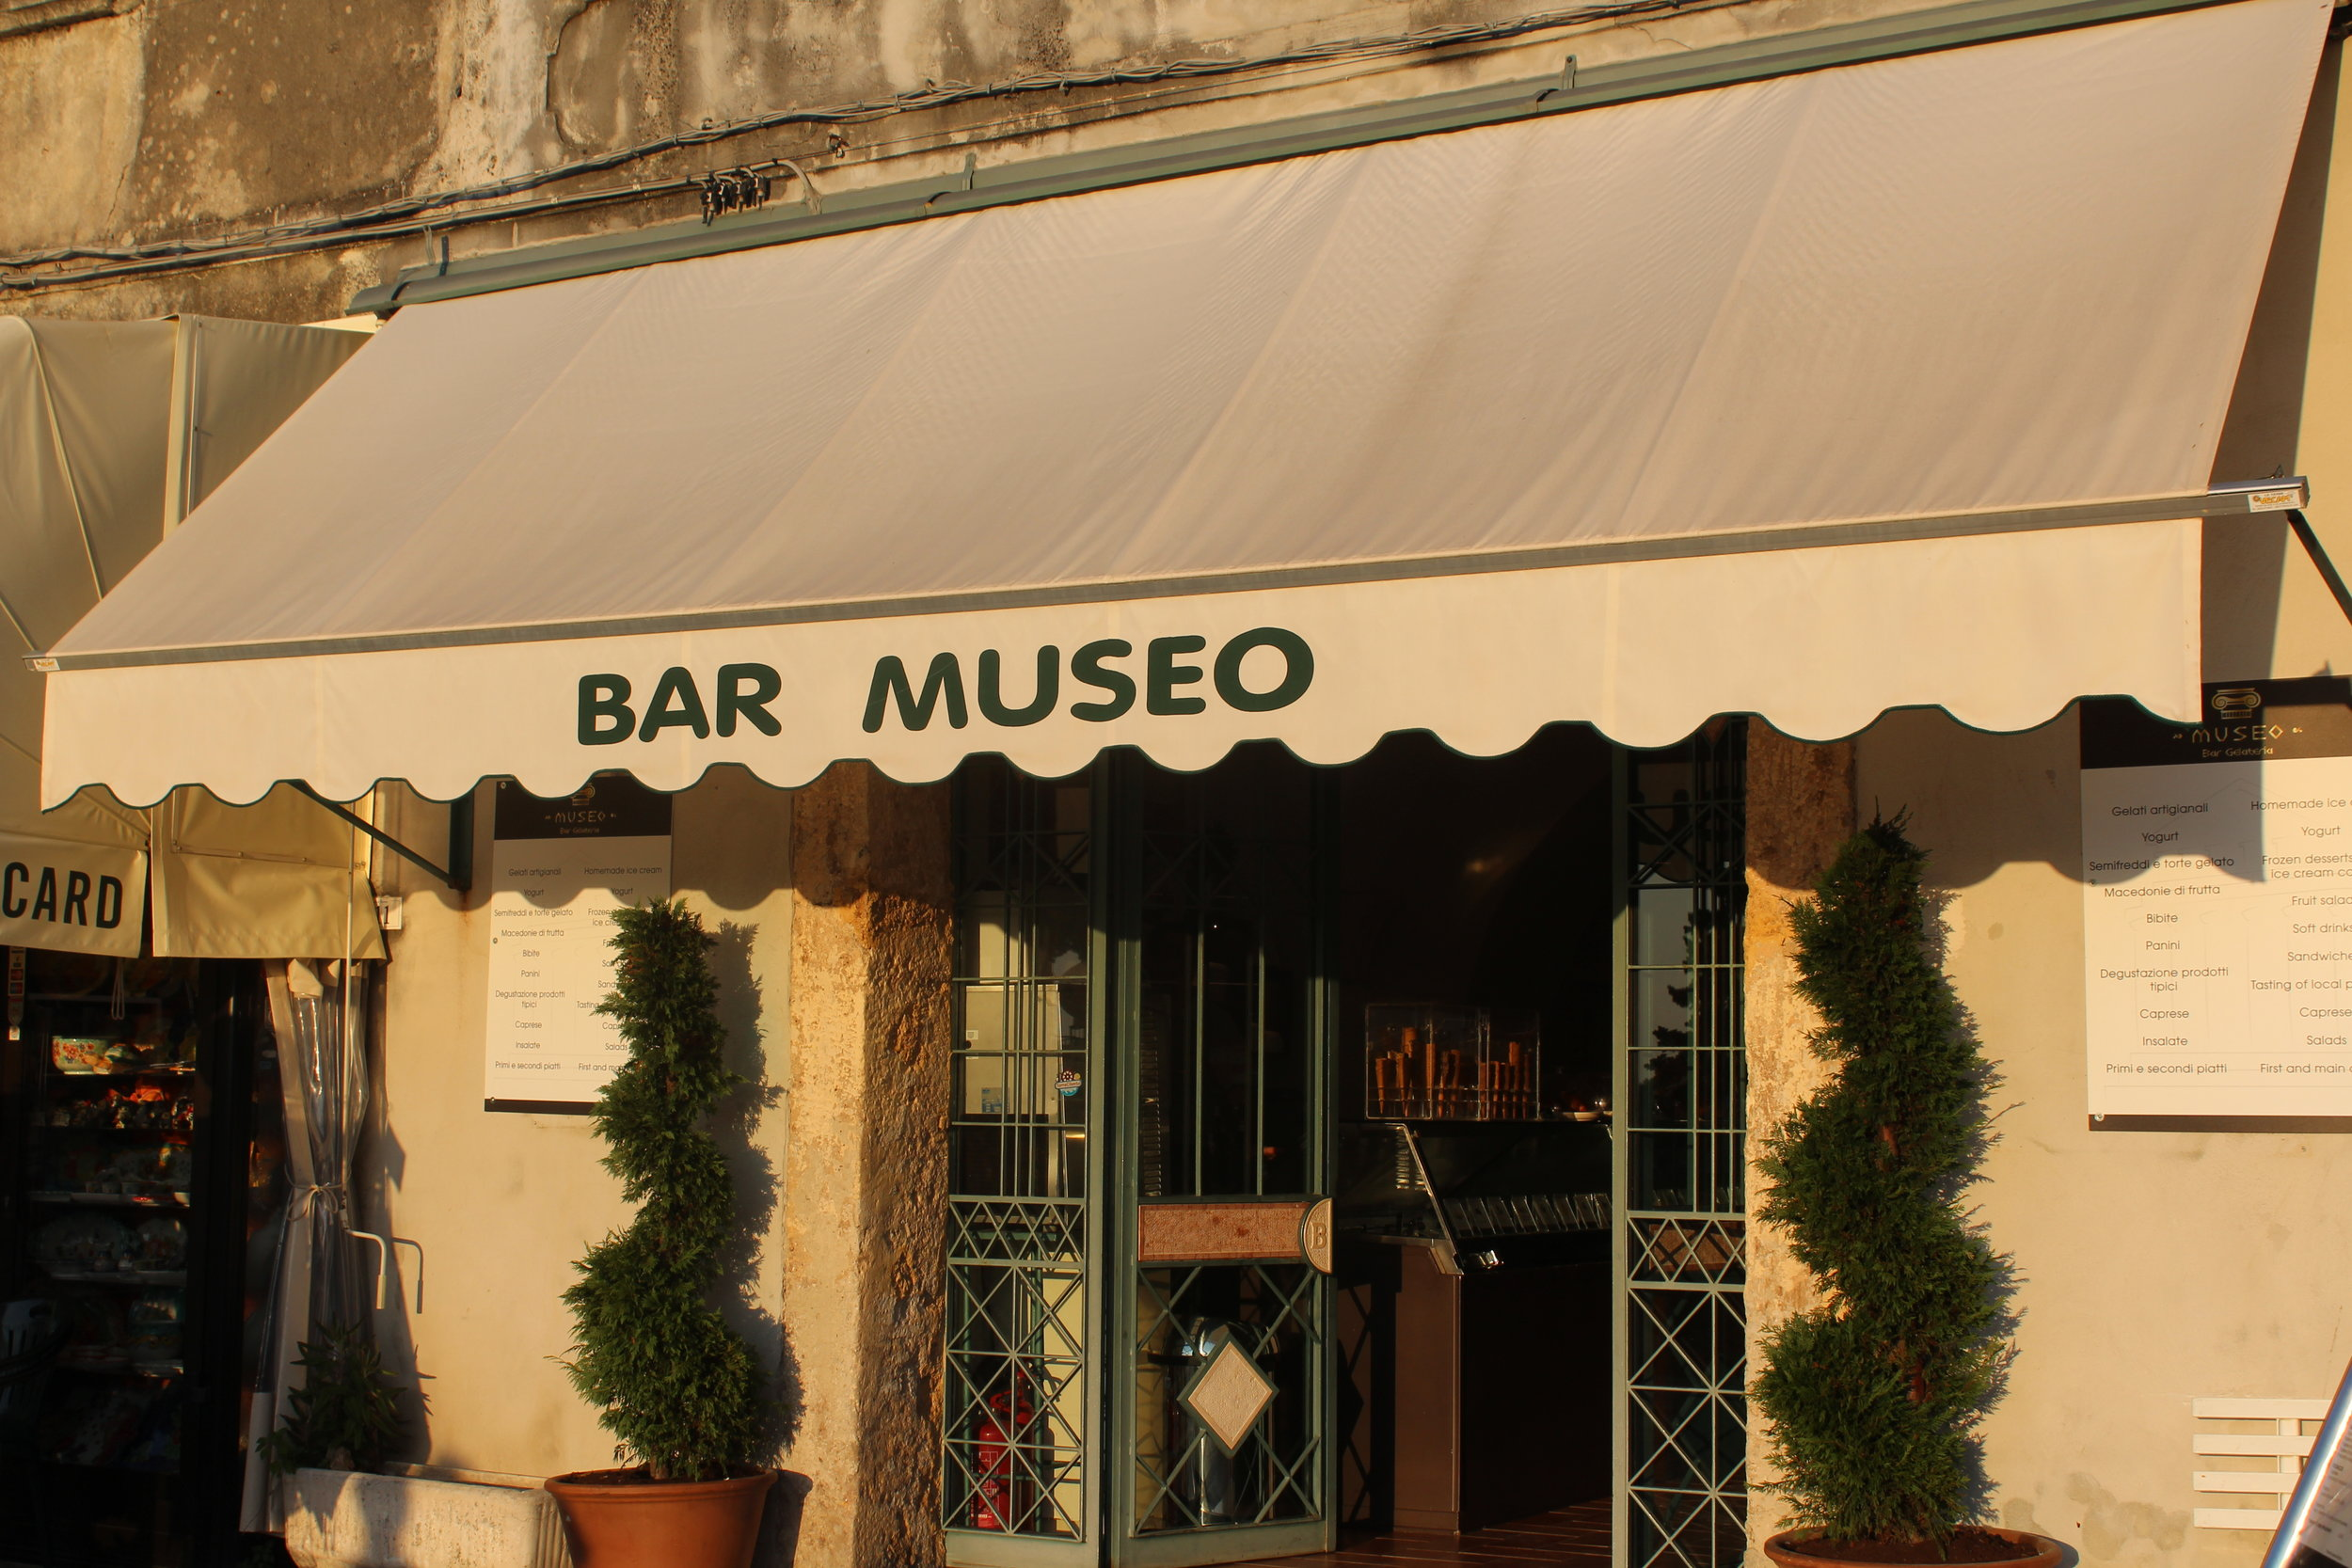 Order an affogato at Bar Museo, a scoop of gelato with a shot of espresso poured over the top.